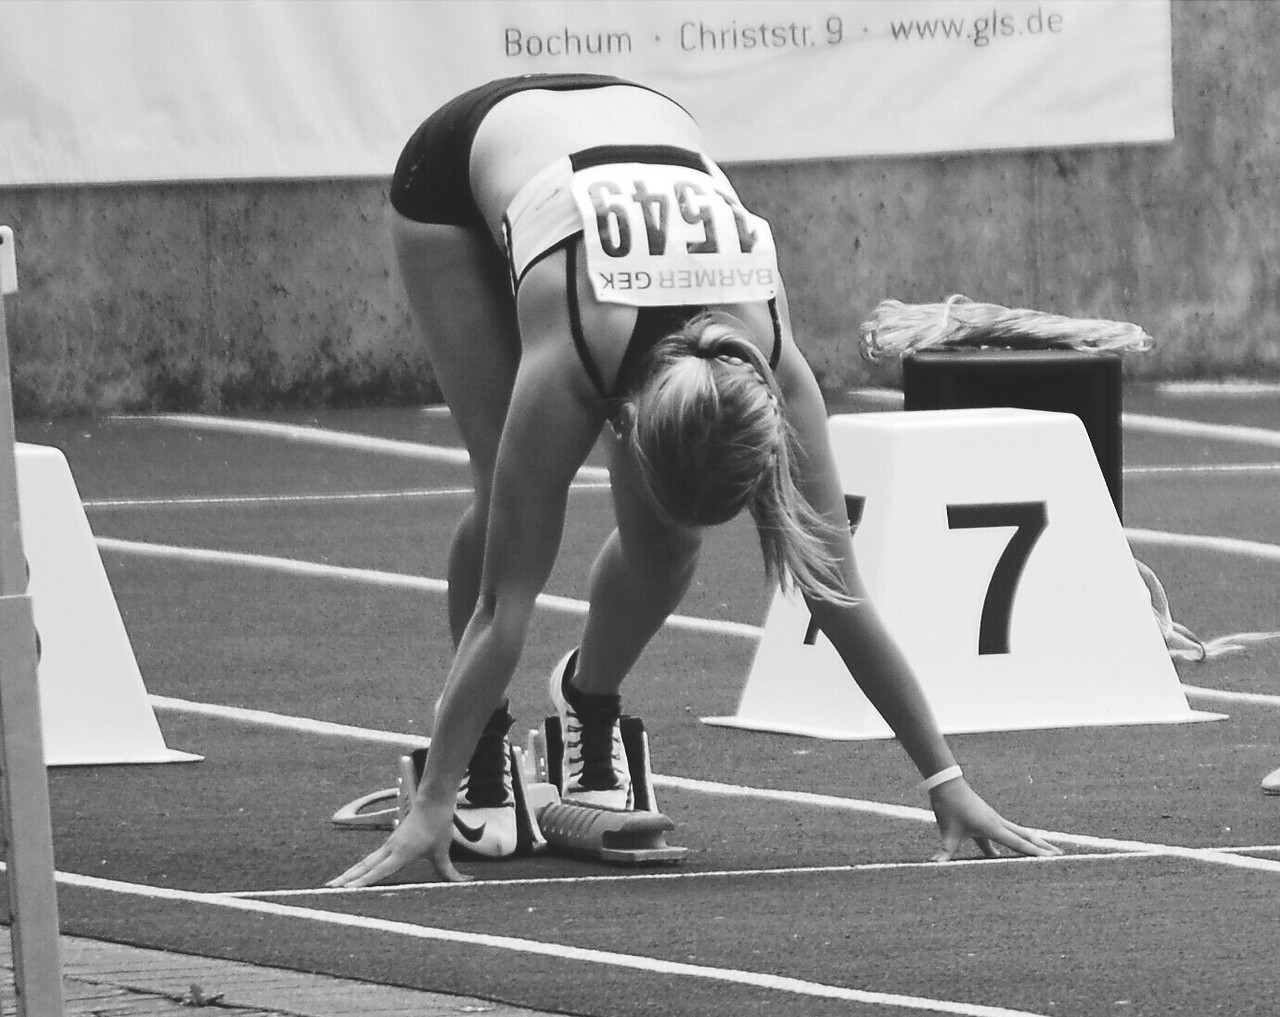 active, and, athletics, black, fit, fitness, girl, healthy, inspiration, love, motivation, nationals, nike, passion, race, relay, shoes, sport, sports, sprint, summer, team, track, track and field, white, win, track & field, 200m, 100m, sprinting